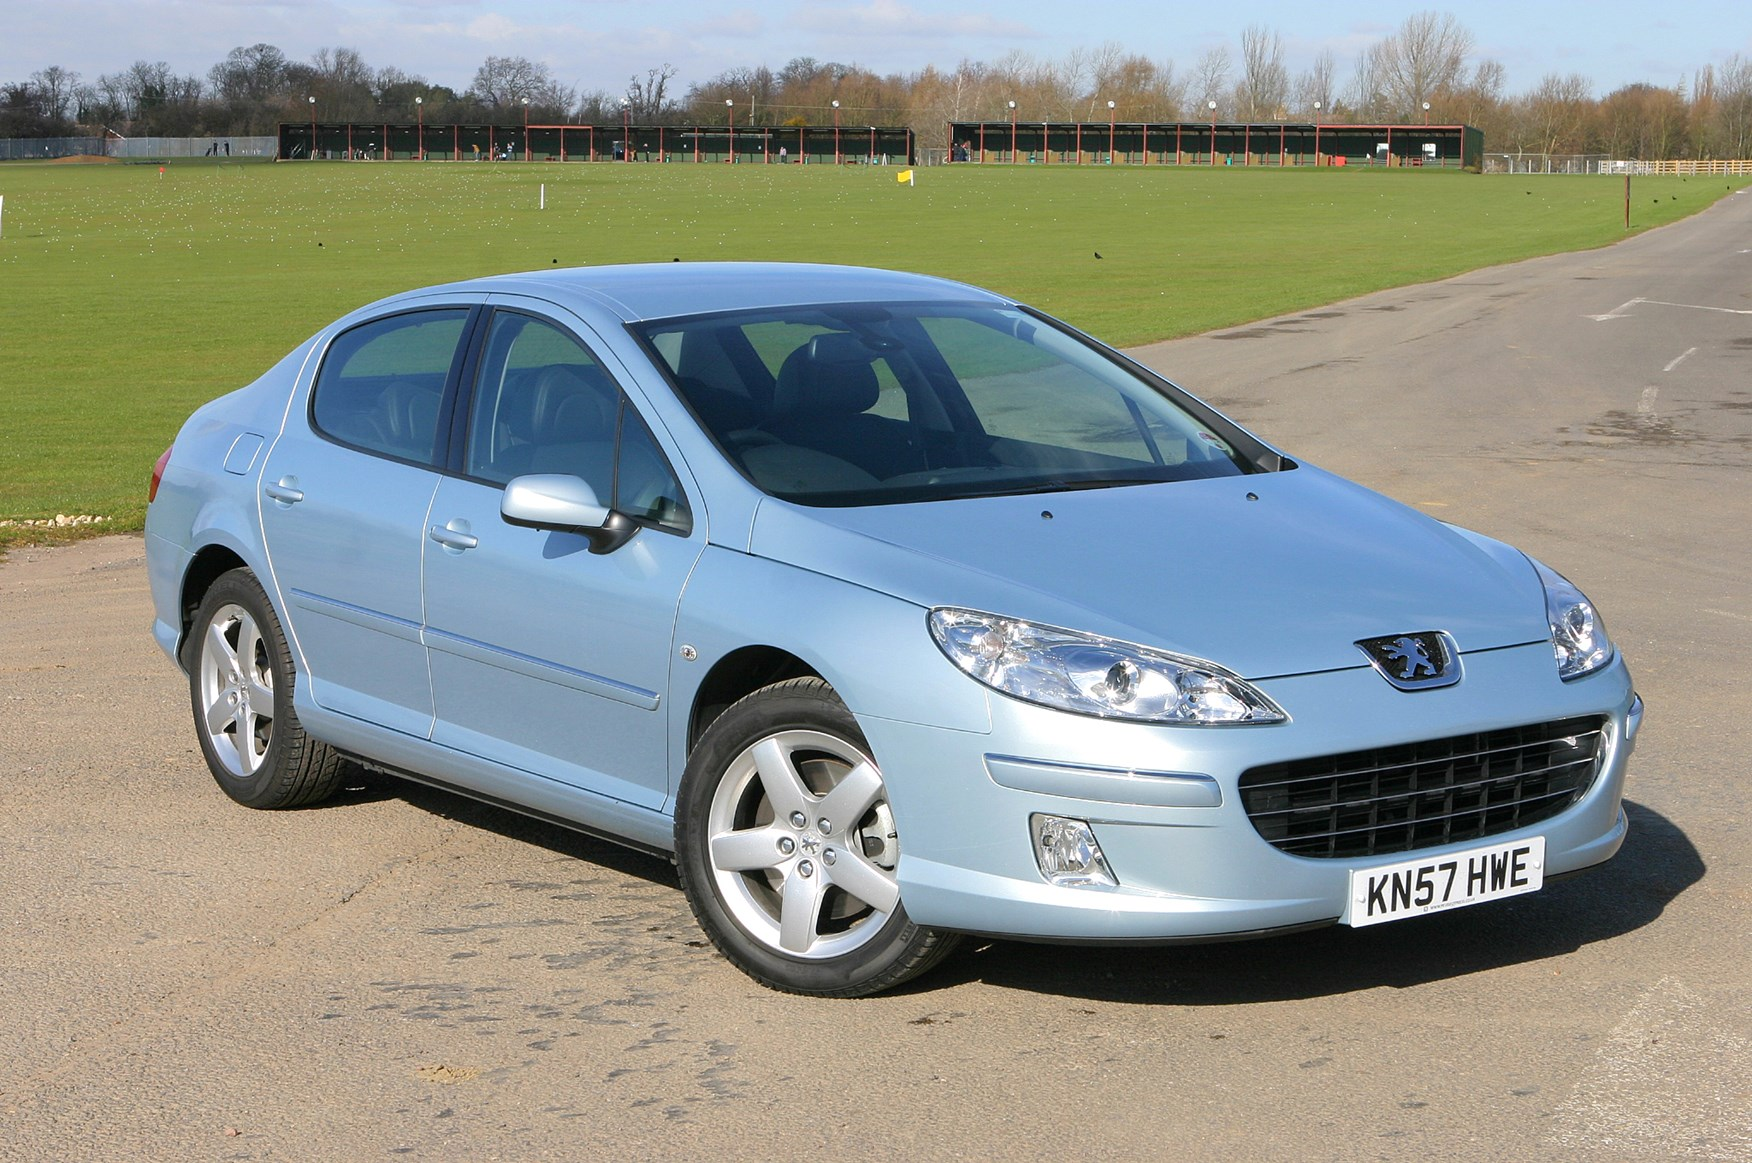 Peugeot 407 Saloon Review (2004 - 2011) | Parkers